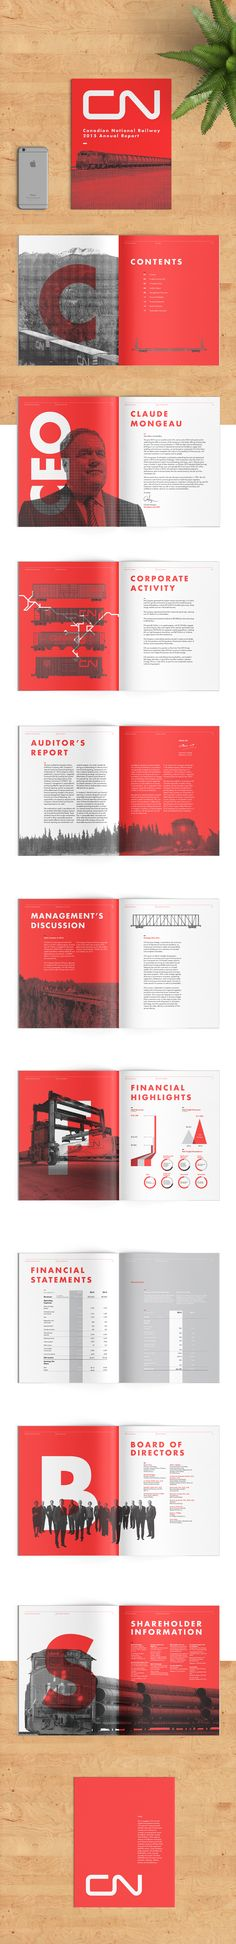 CN Annual Report on Behance More